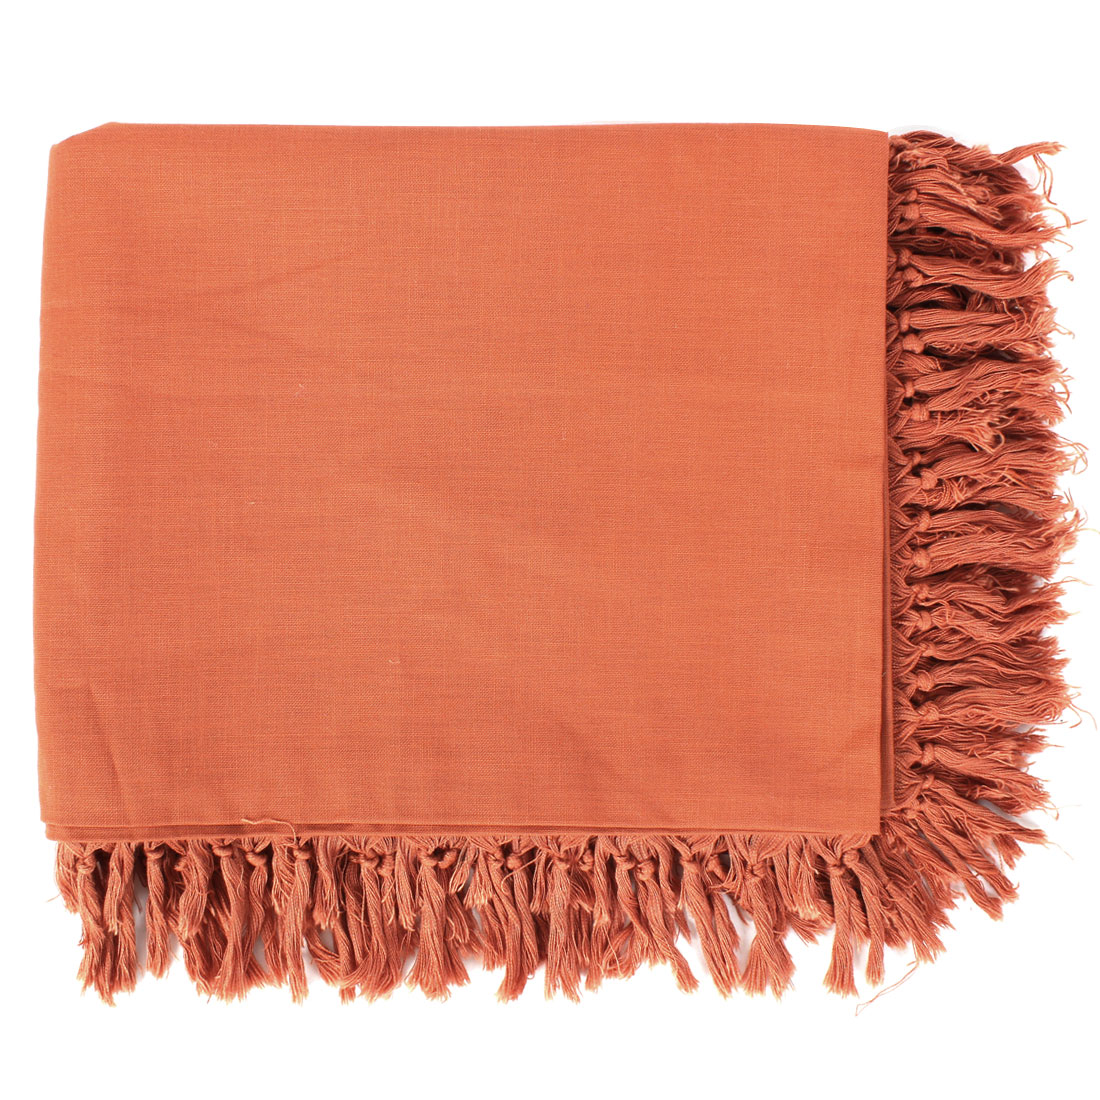 Restaurant Home Decor Orange Tablecloth Table Cover